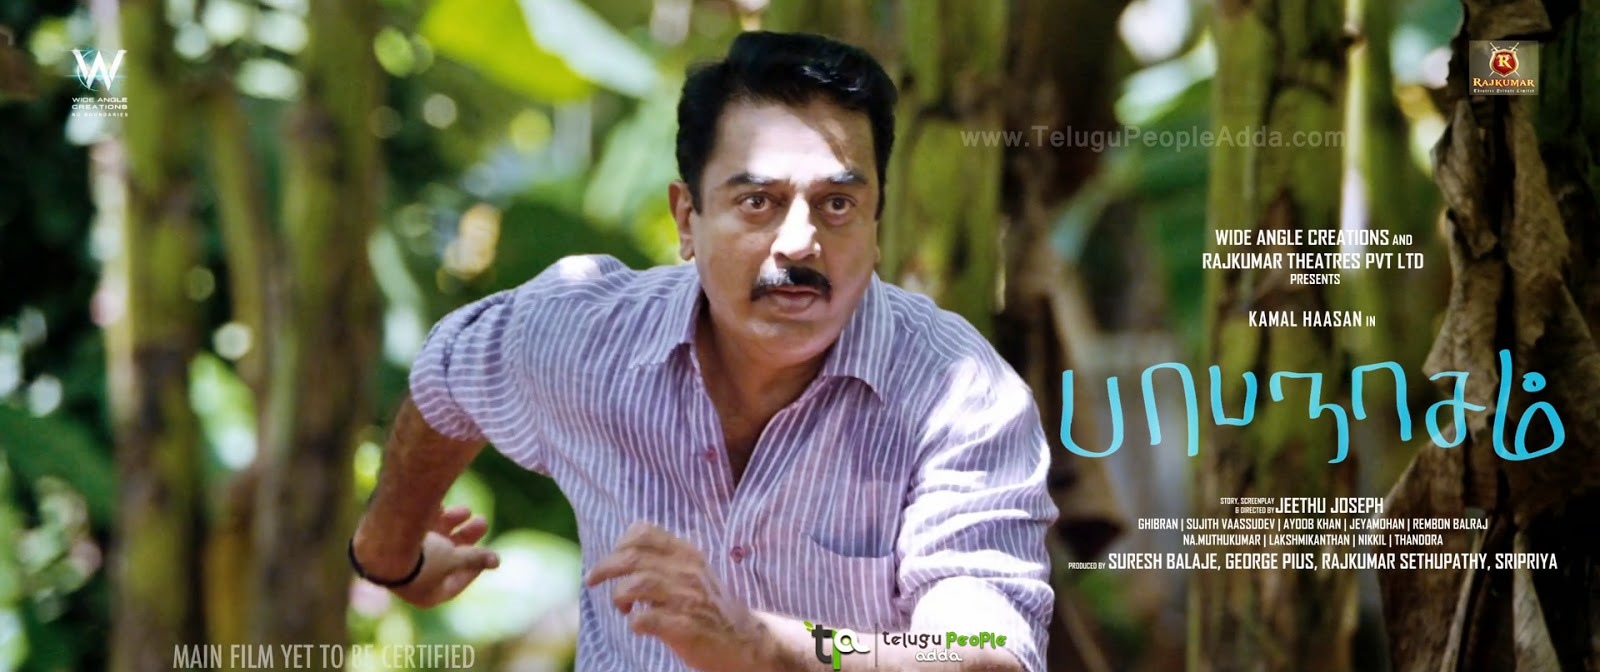 Kamal Haasan's Papanasam Official Theatrical Trailer